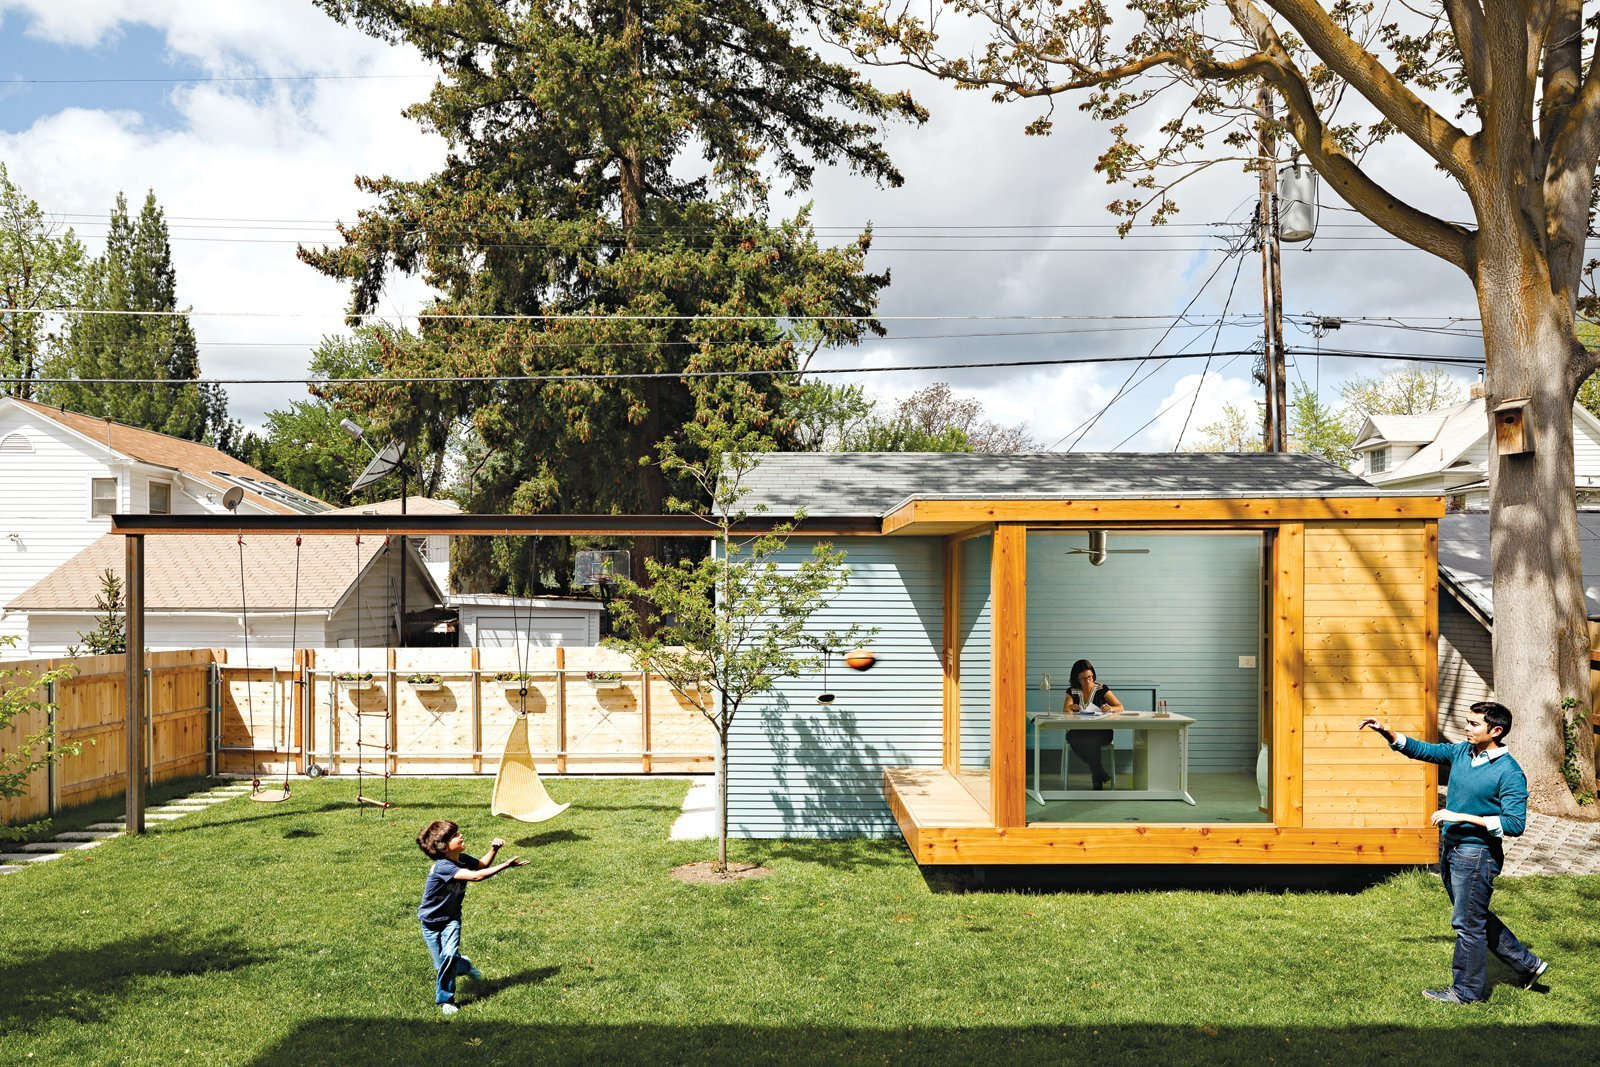 Shed & Studio, Den, Family Room, and Living Room Portland, Oregon–based architects Heidi Beebe and Doug Skidmore designed a glass-walled studio to create a focal point in backyard of this Boise, Idaho house, and as a home office for one of the owners.  Best Shed & Studio Den Family Room Photos from 8 Tiny Sheds and Studios Used as Home Offices or Creative Retreats